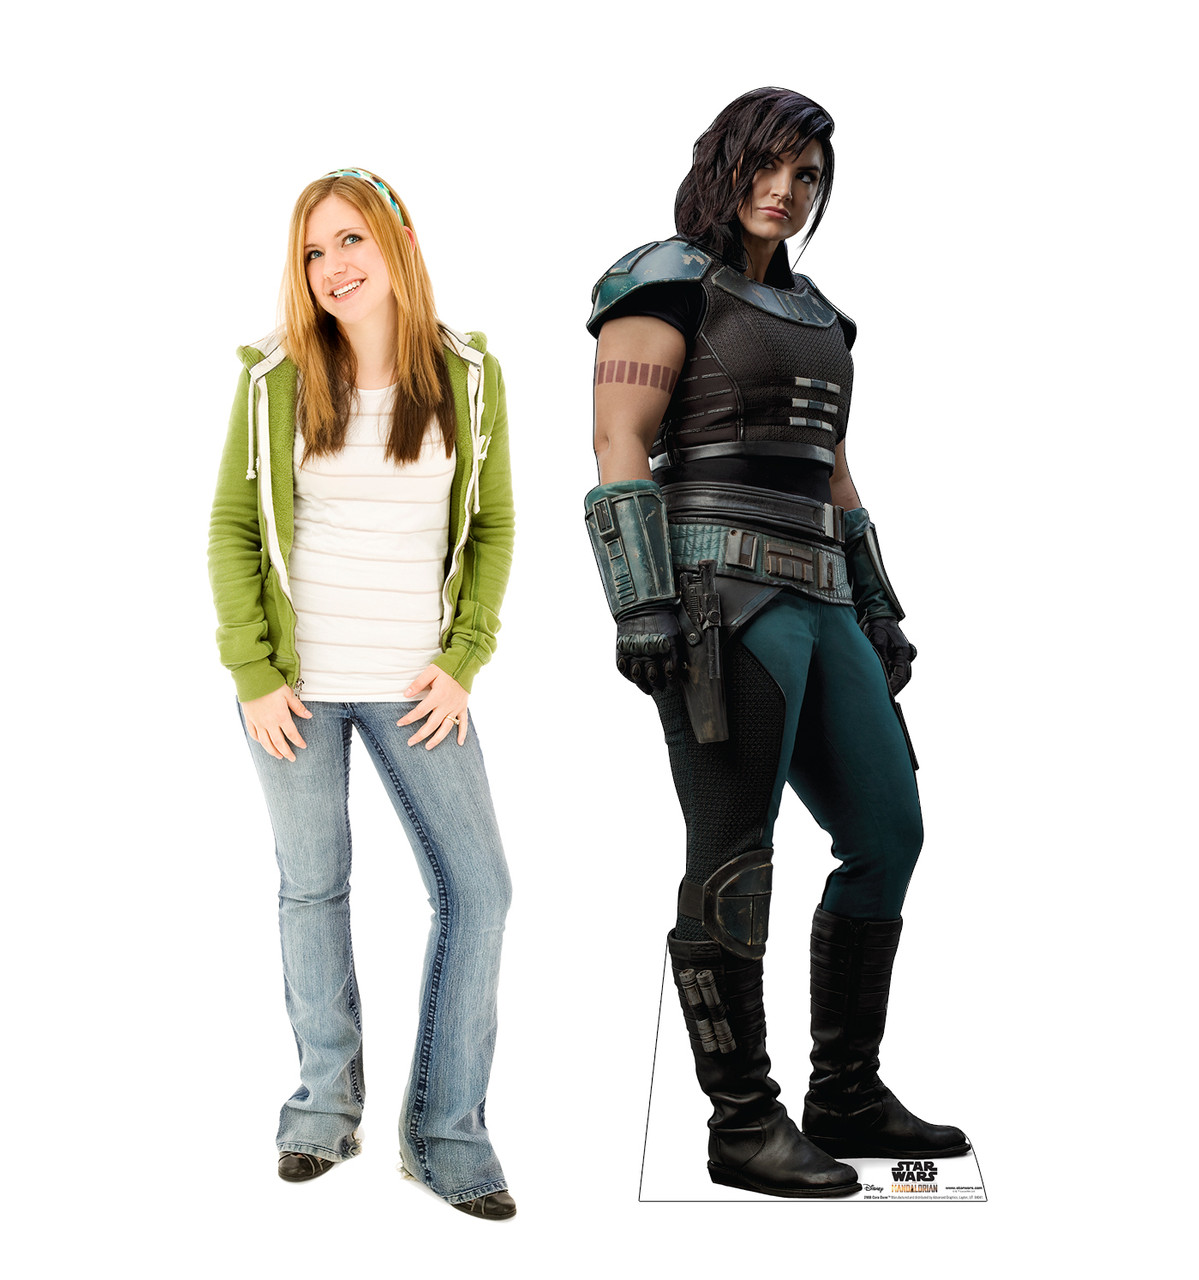 Life-size cardboard standee of Cara Dune fromThe Mandalorian with model.